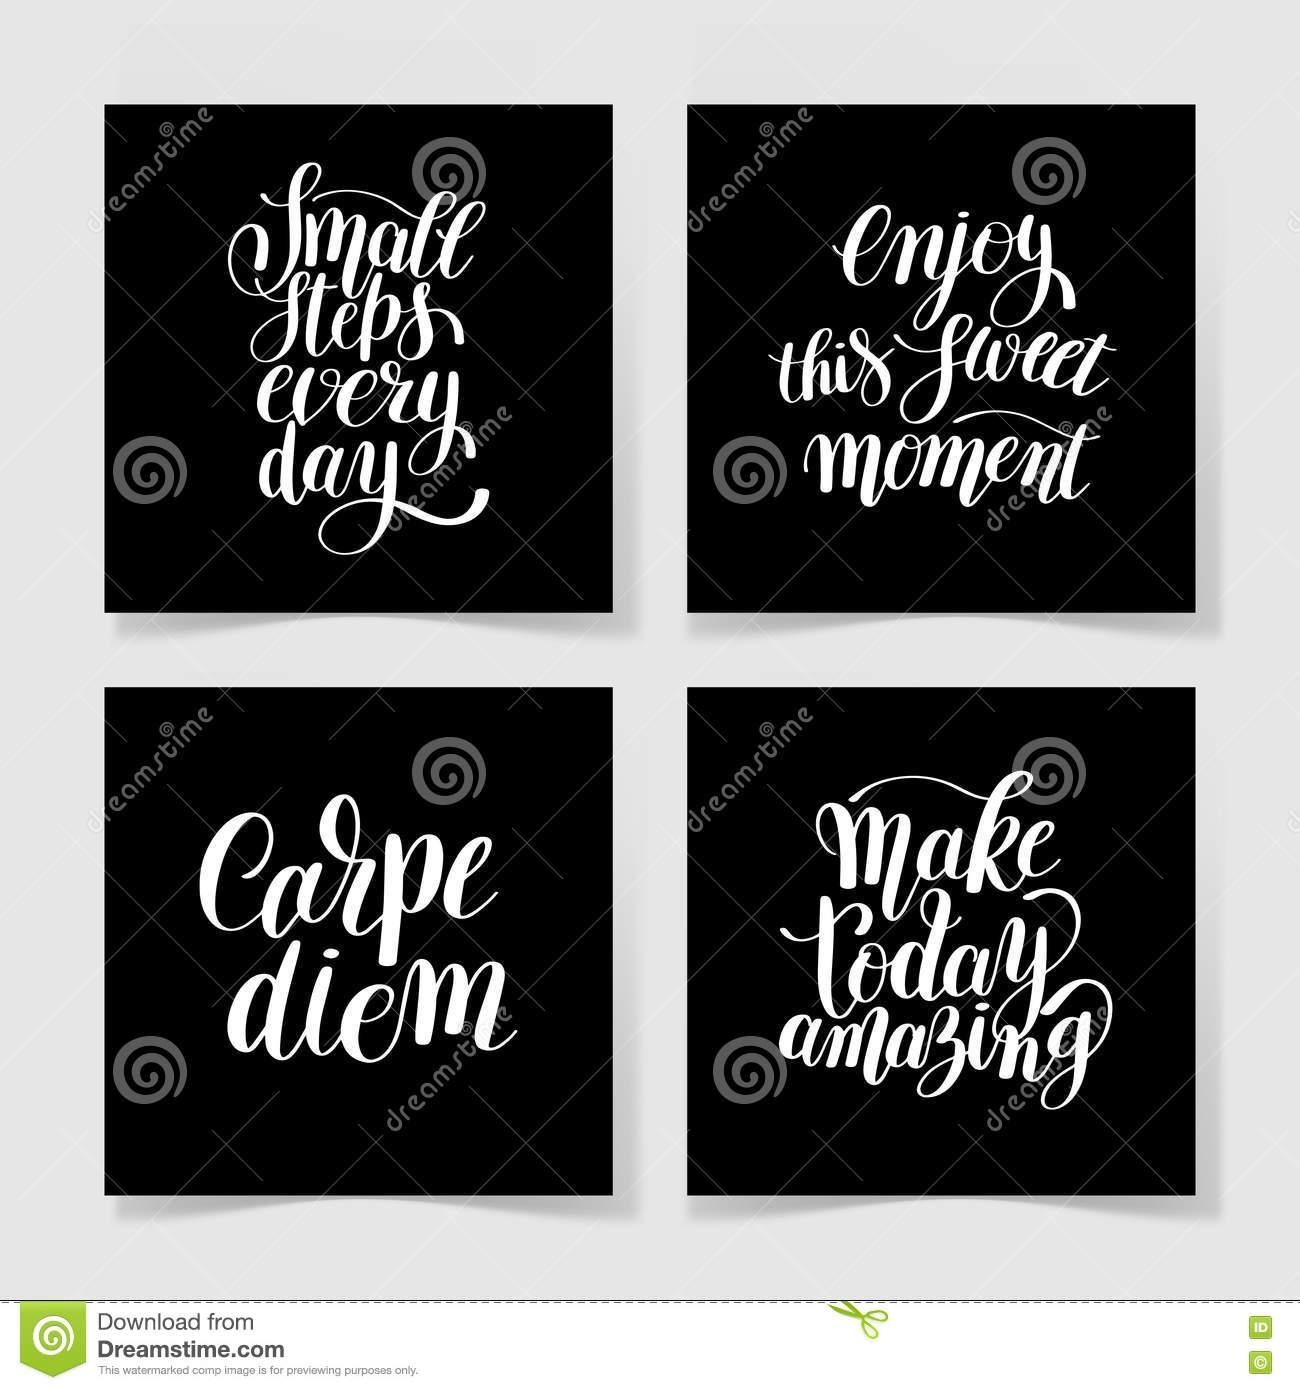 Quotes Set To Printable Wall Art, Textile Design Stock Vector Throughout Printable Wall Art Quotes (View 10 of 20)